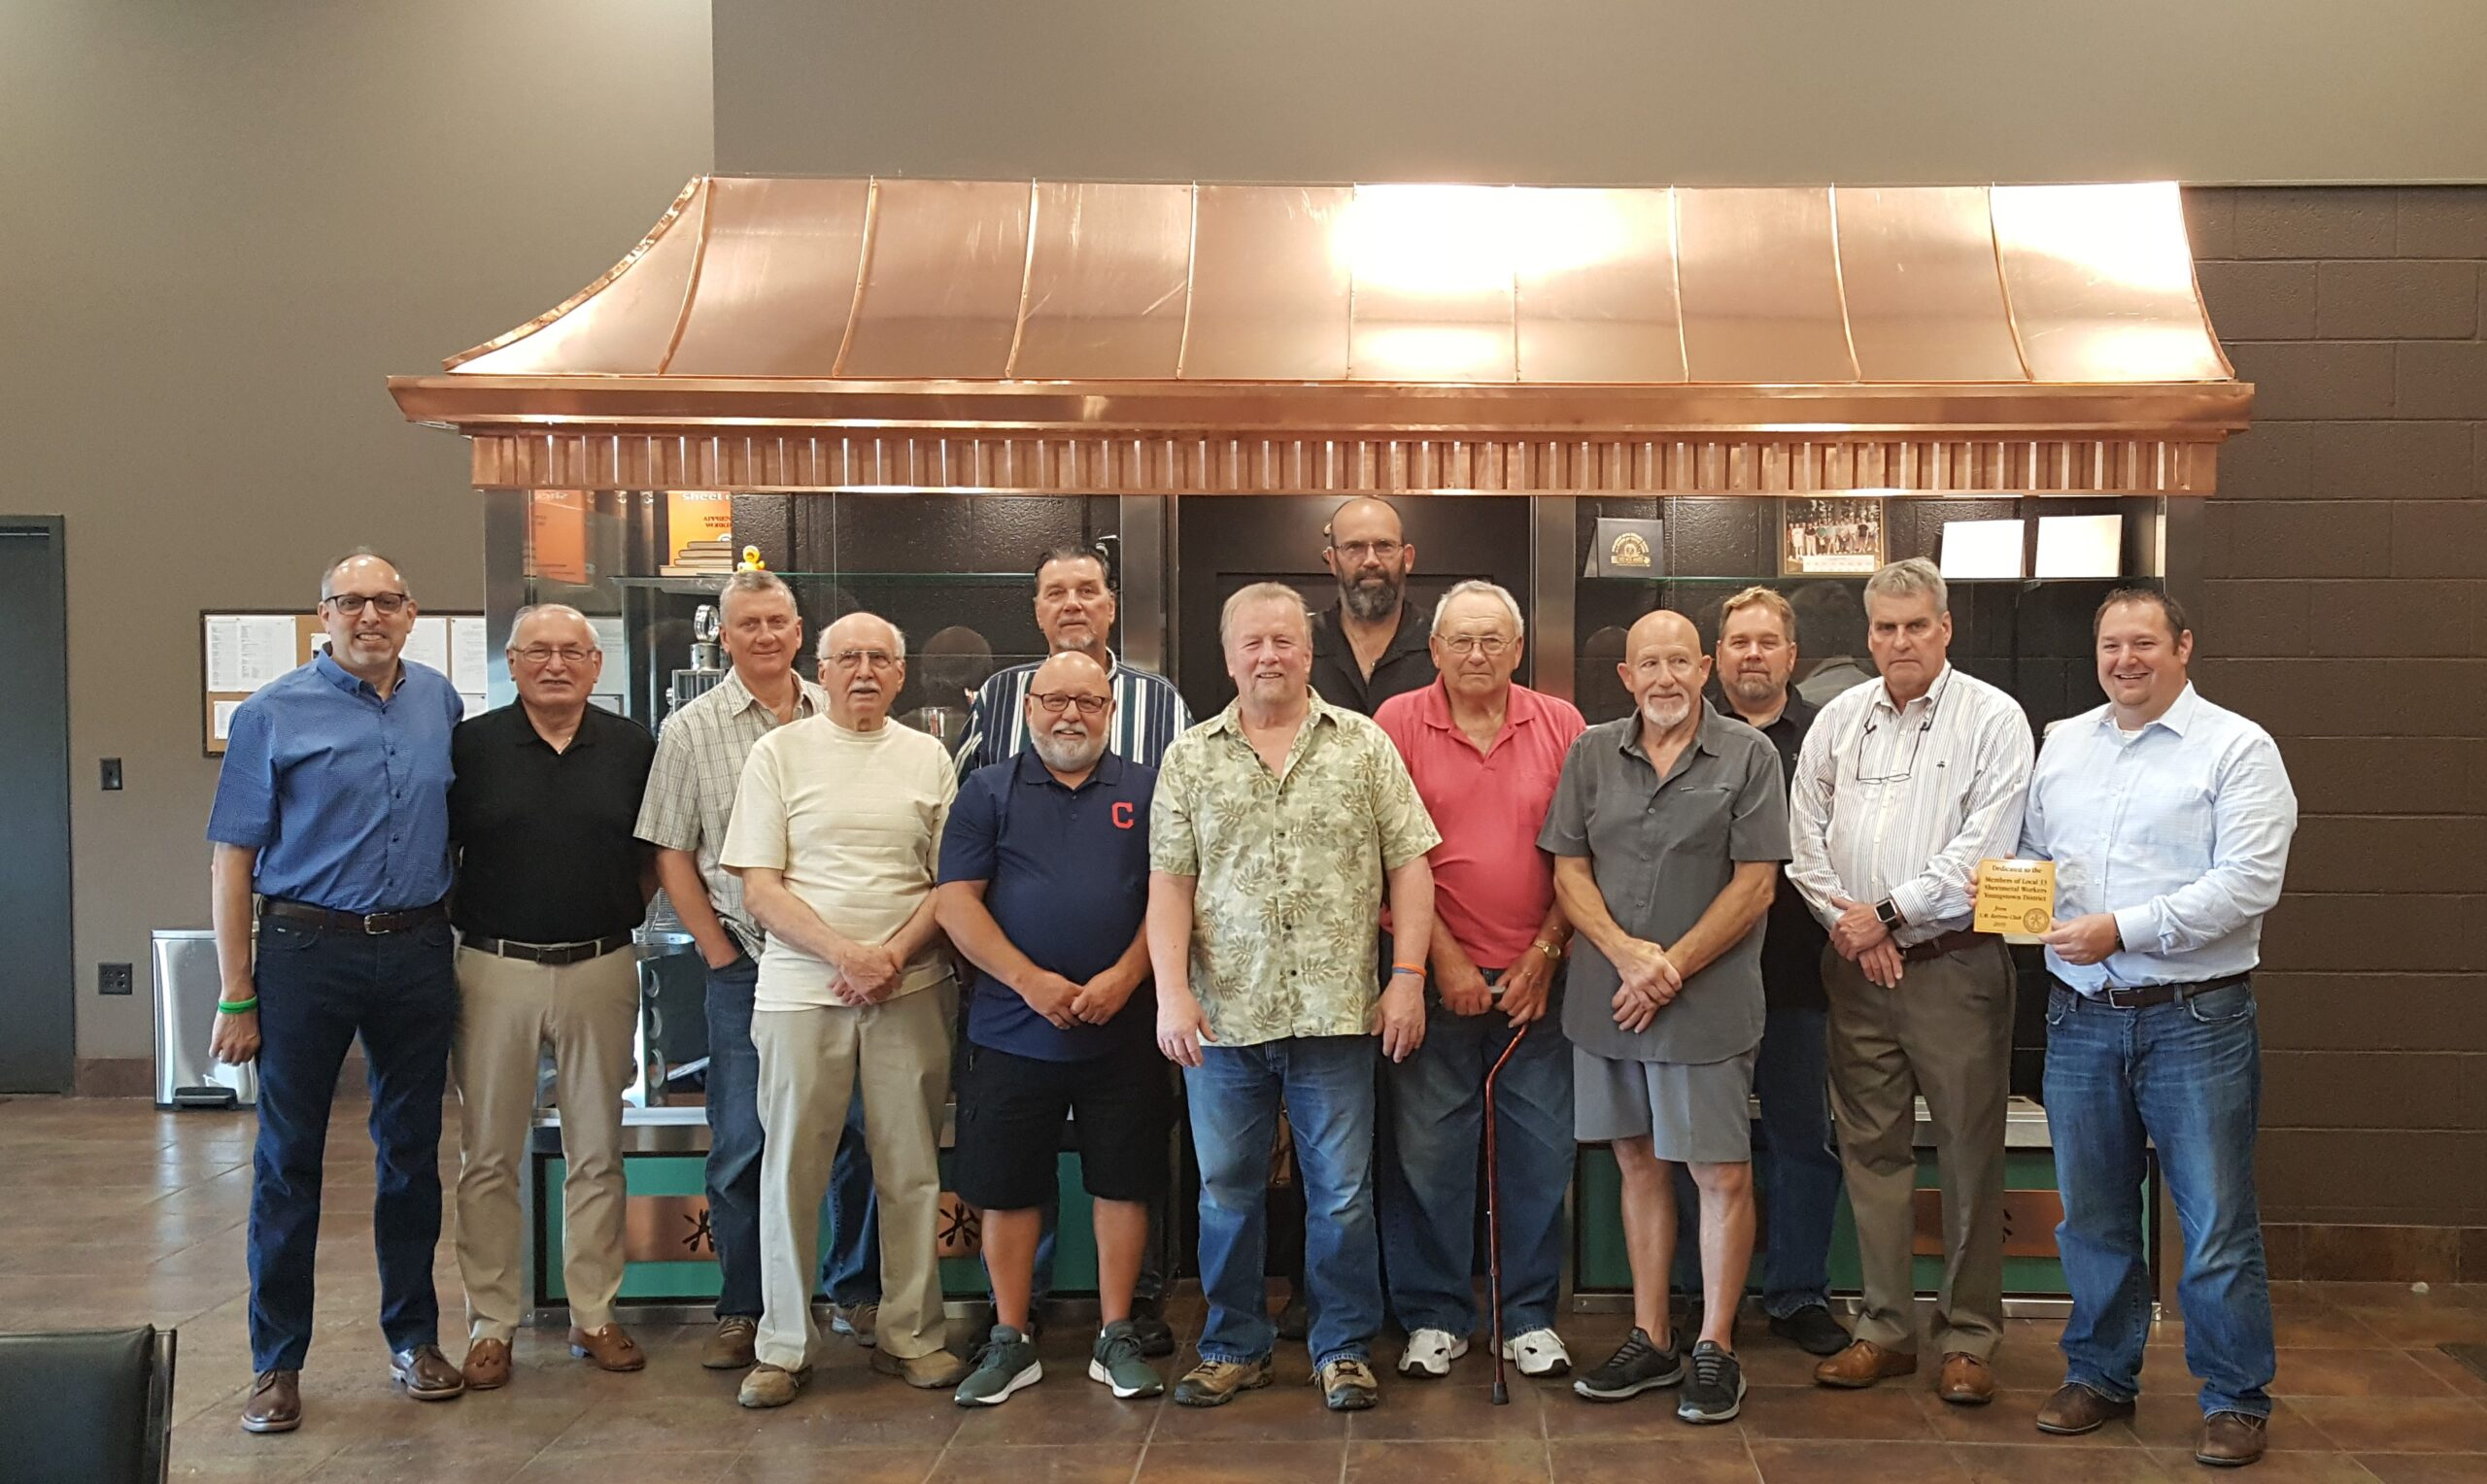 2019 Youngstown Retiree's Club at the Showcase Dedication. From Left to Right: George Kirally Jr., George Kirally Sr., Mike Yurchison, Joe Kirally, George Matyas (Front), Mike Lovrinoff (back), Ken Bailey, Scott Durr, Sam Durr Sr., Joe Romeo, Bill Kuebler, Larry McQuillan, Business Agent, Jesse Wright